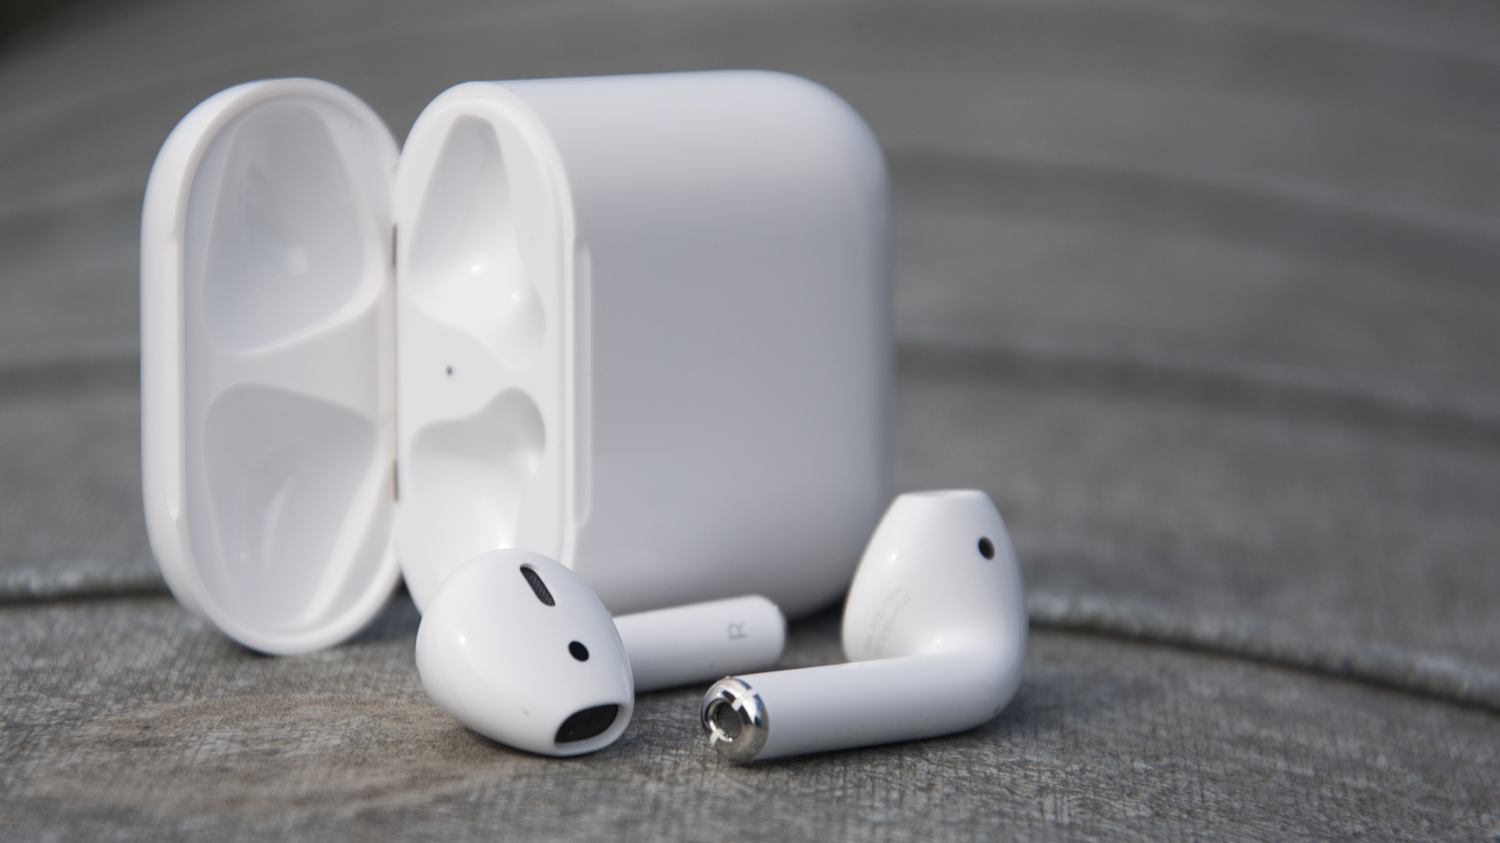 Error with AirPods is not the first in the history of Apple